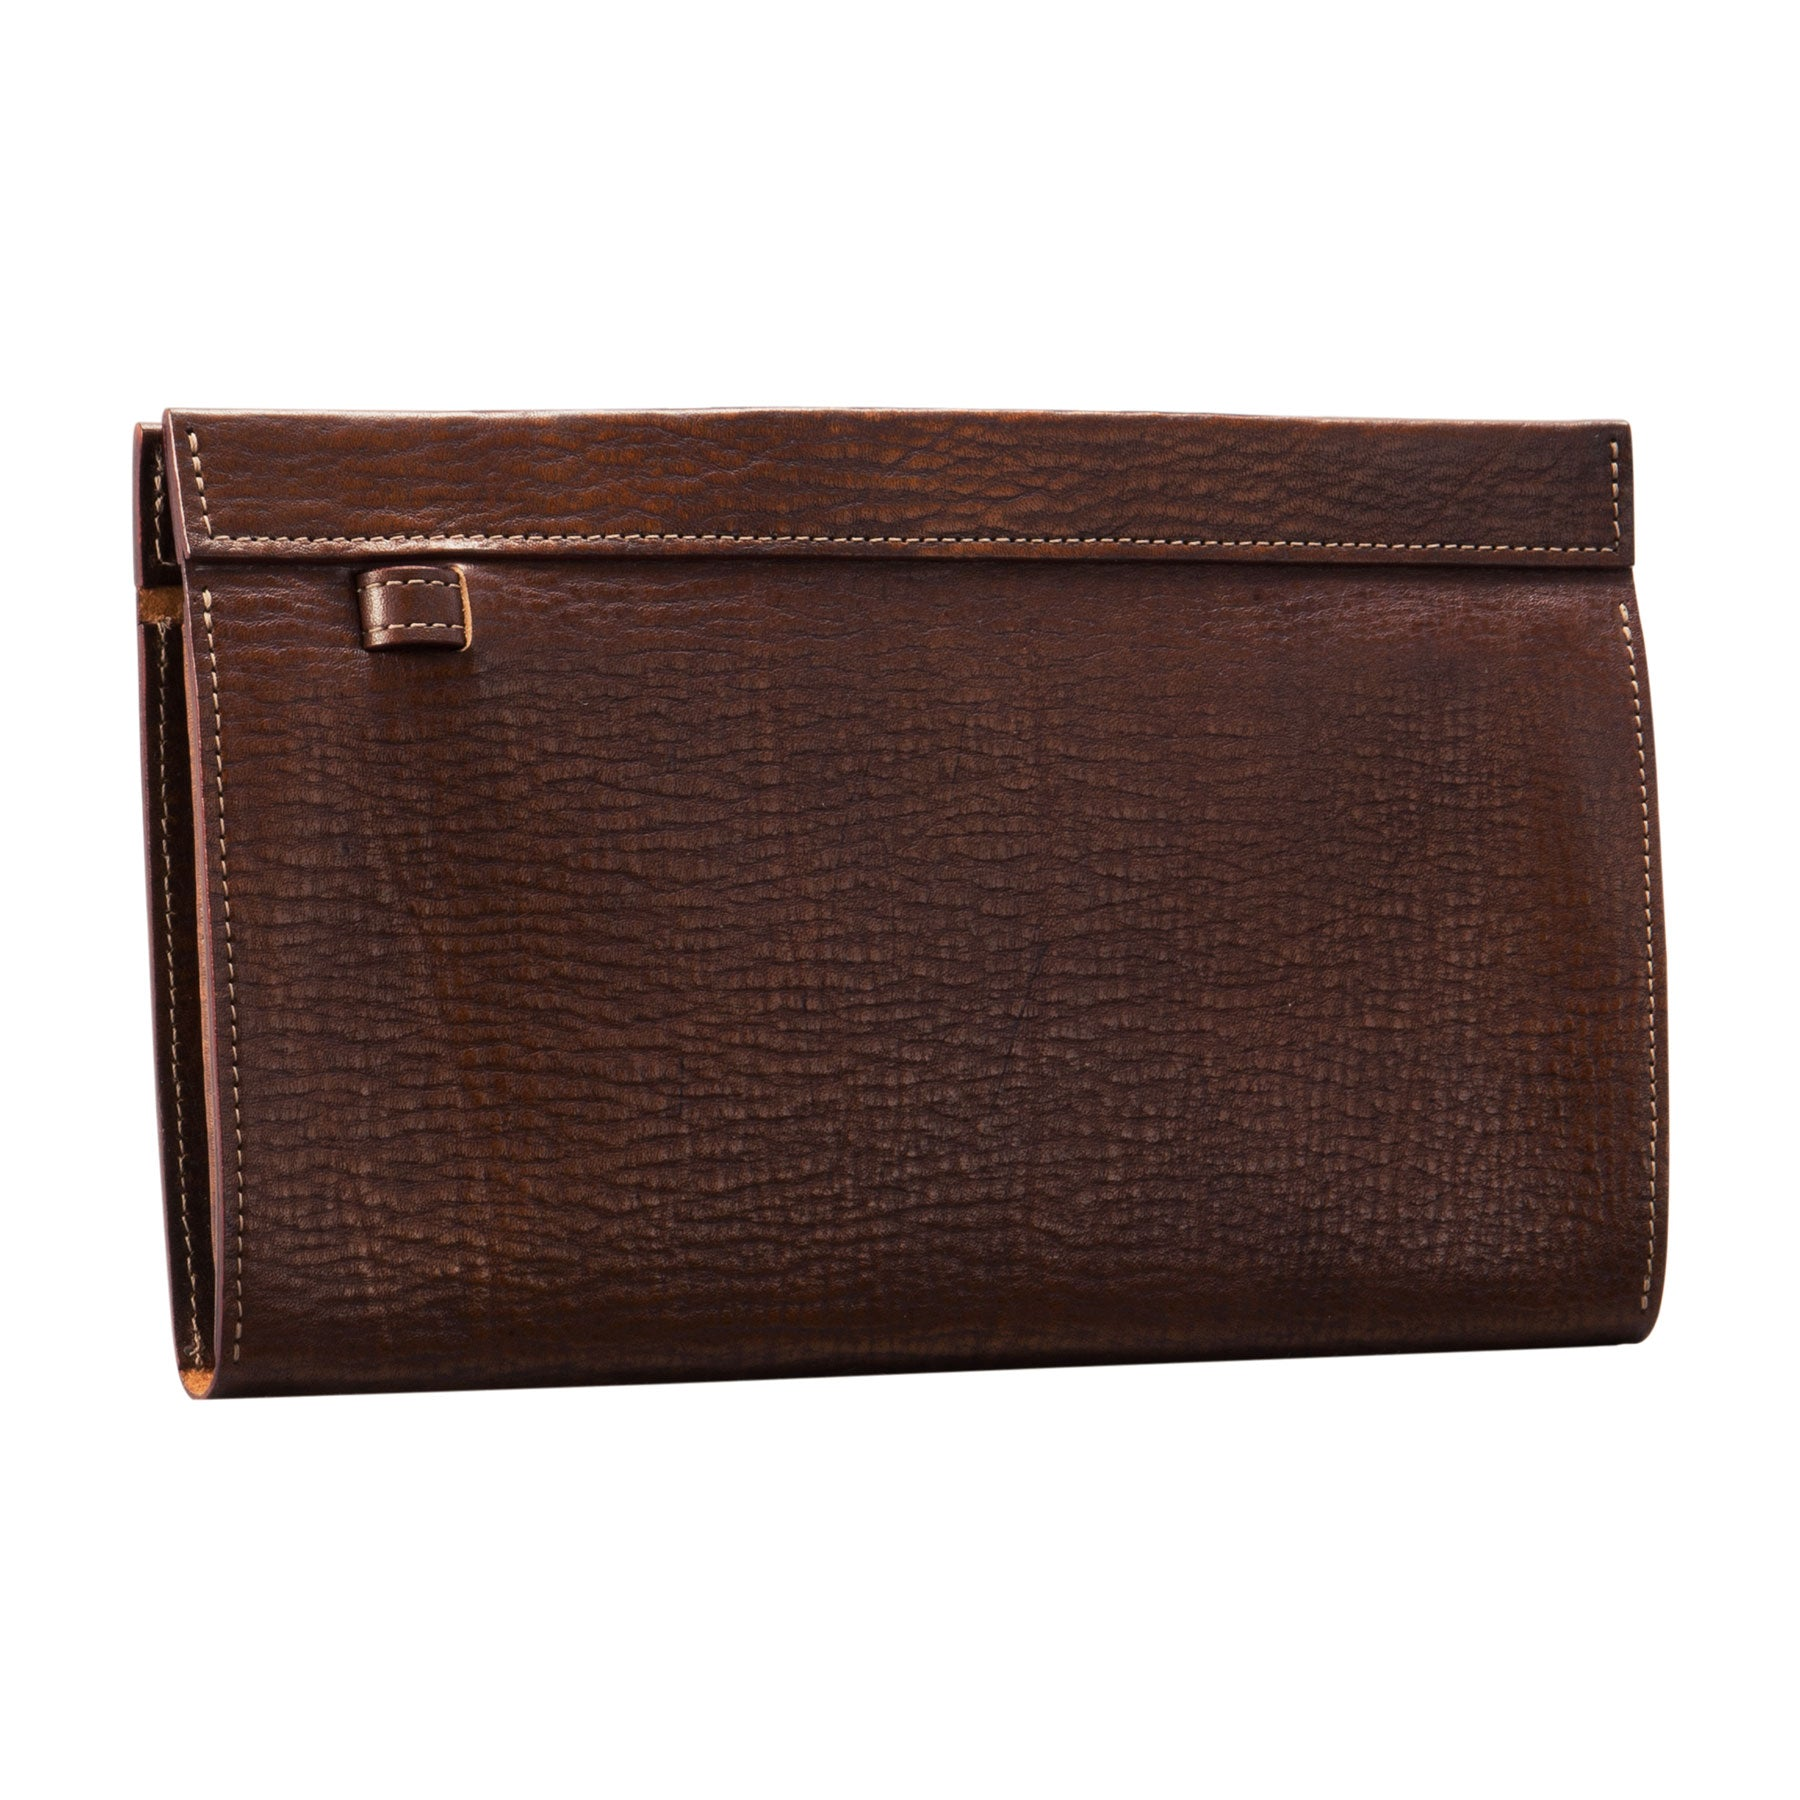 Glaser Designs Clutch Portfolio. Hand colored Sienna vegetable tanned leather. Magnetic closure and retractable wrist strap. Made to-measure, custom sizes.